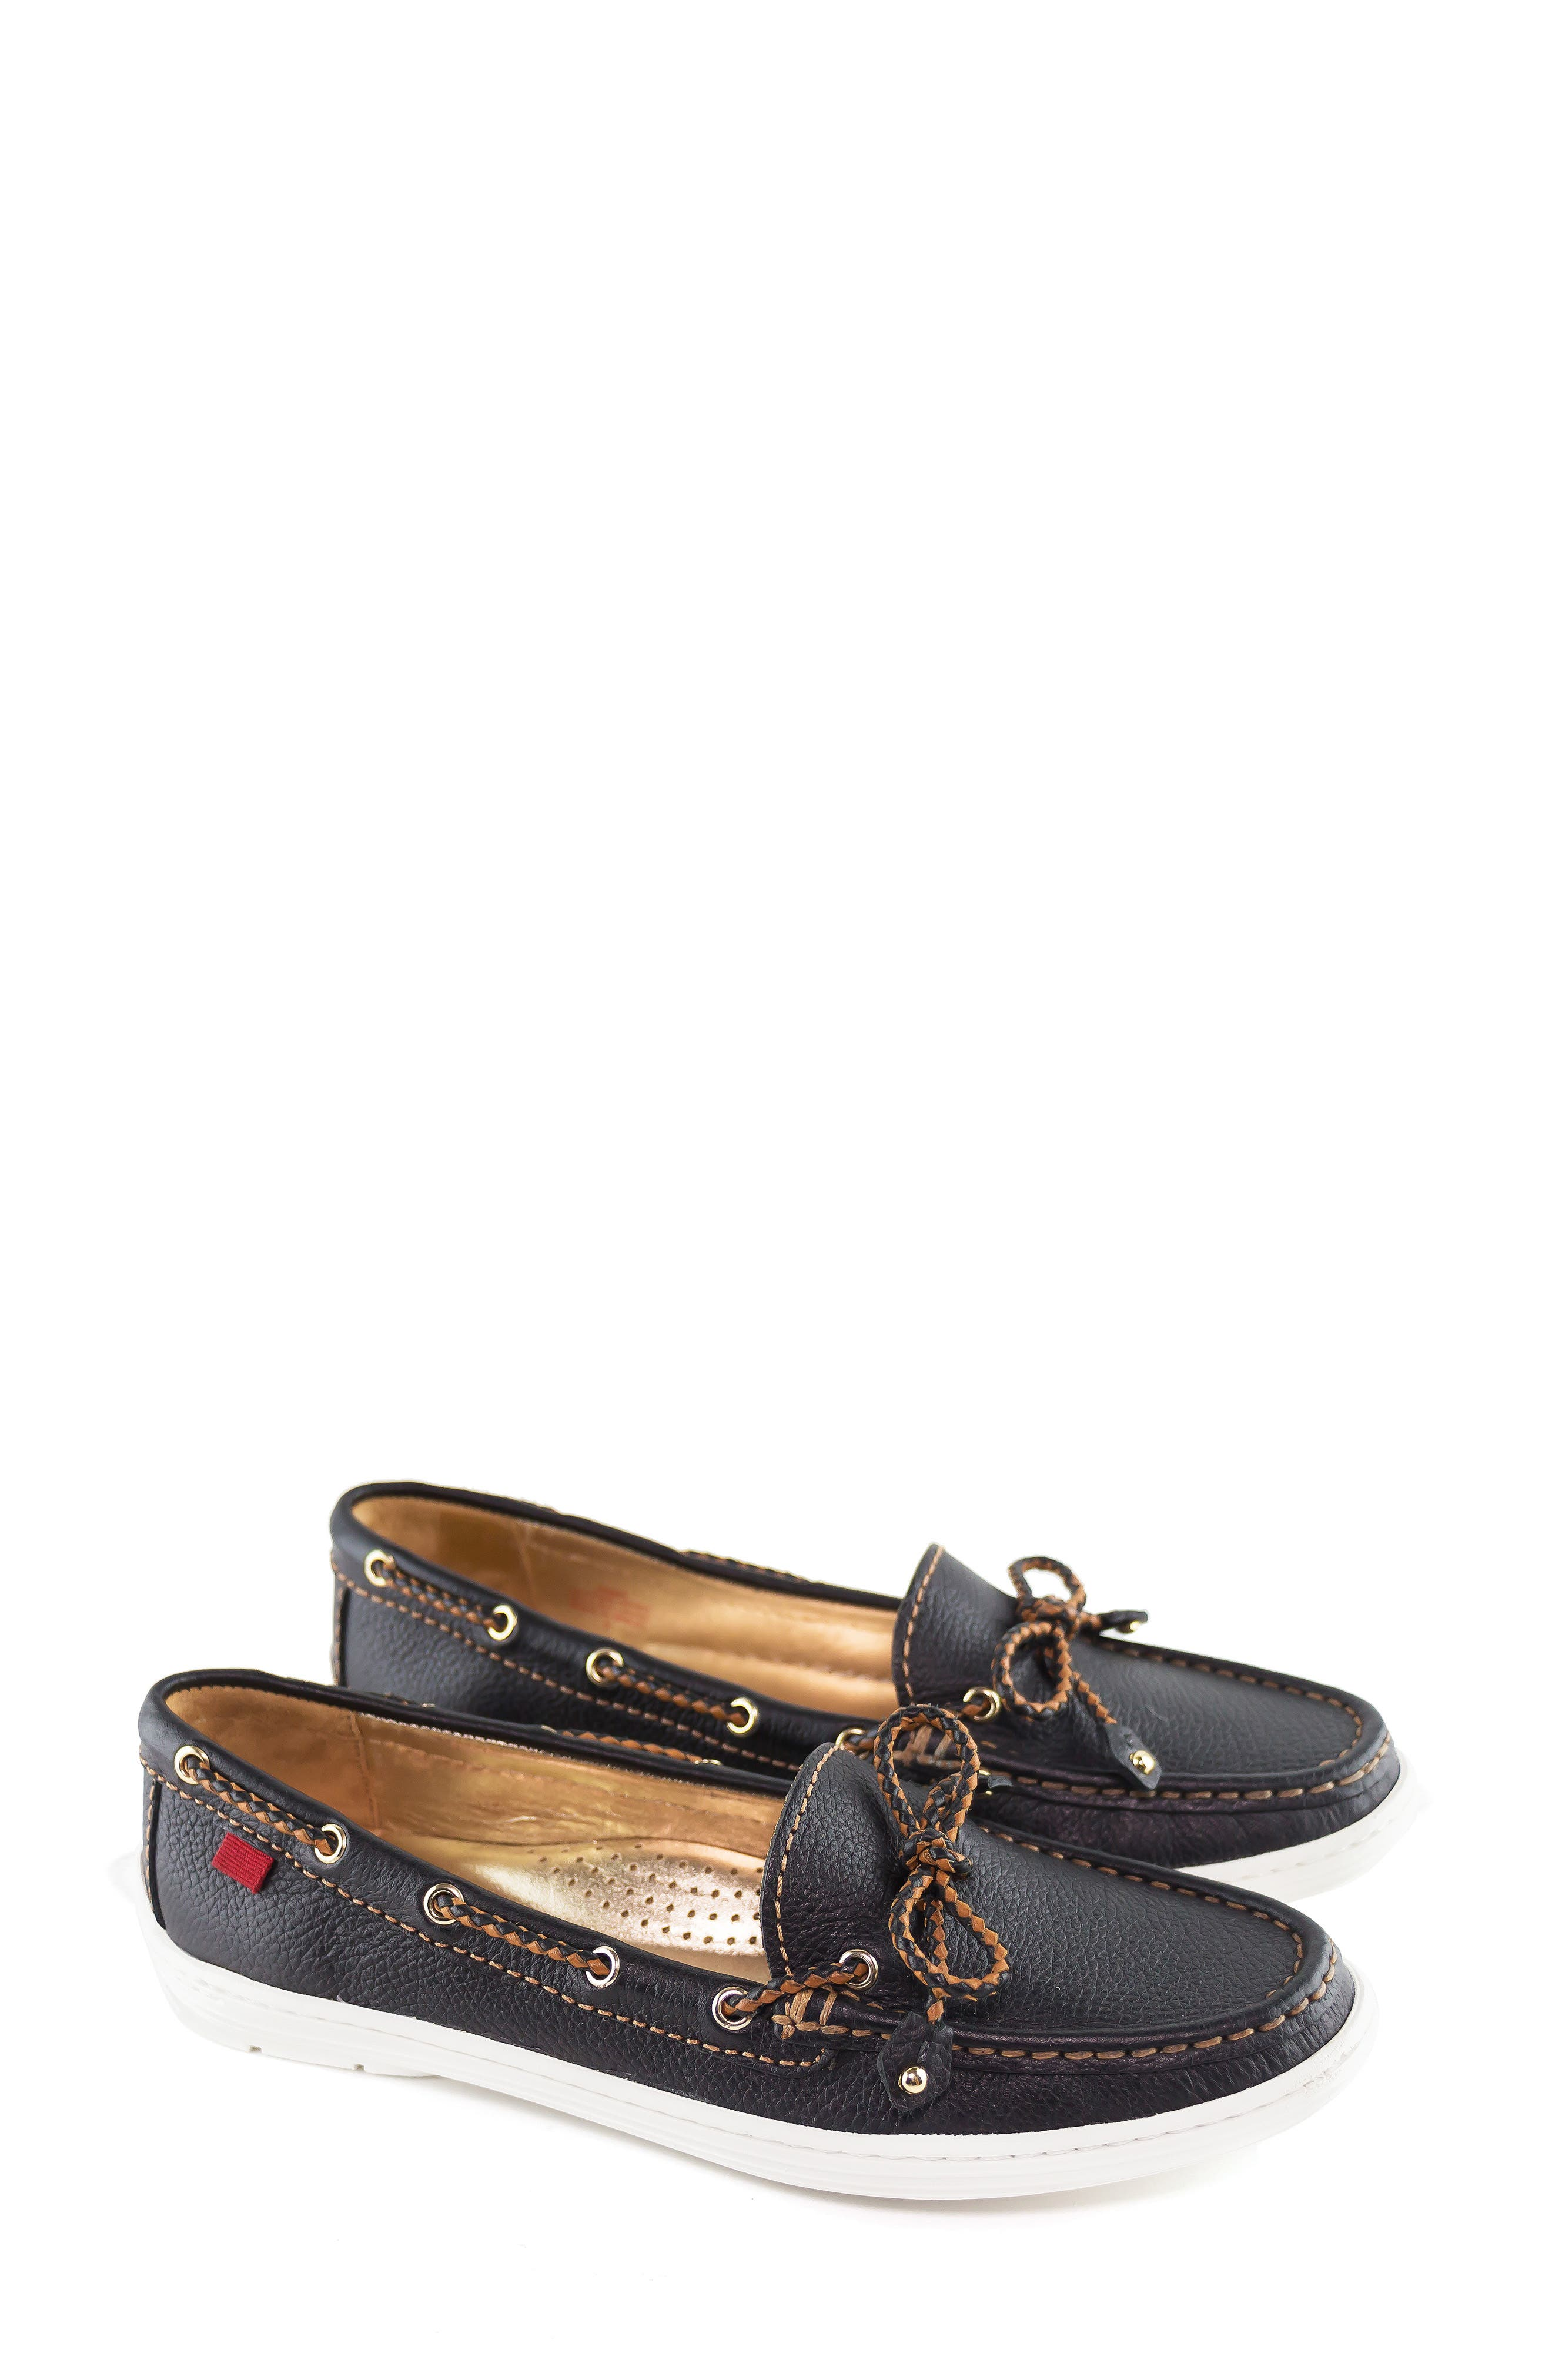 MARC JOSEPH NEW YORK, Pacific Loafer, Alternate thumbnail 7, color, BLACK LEATHER